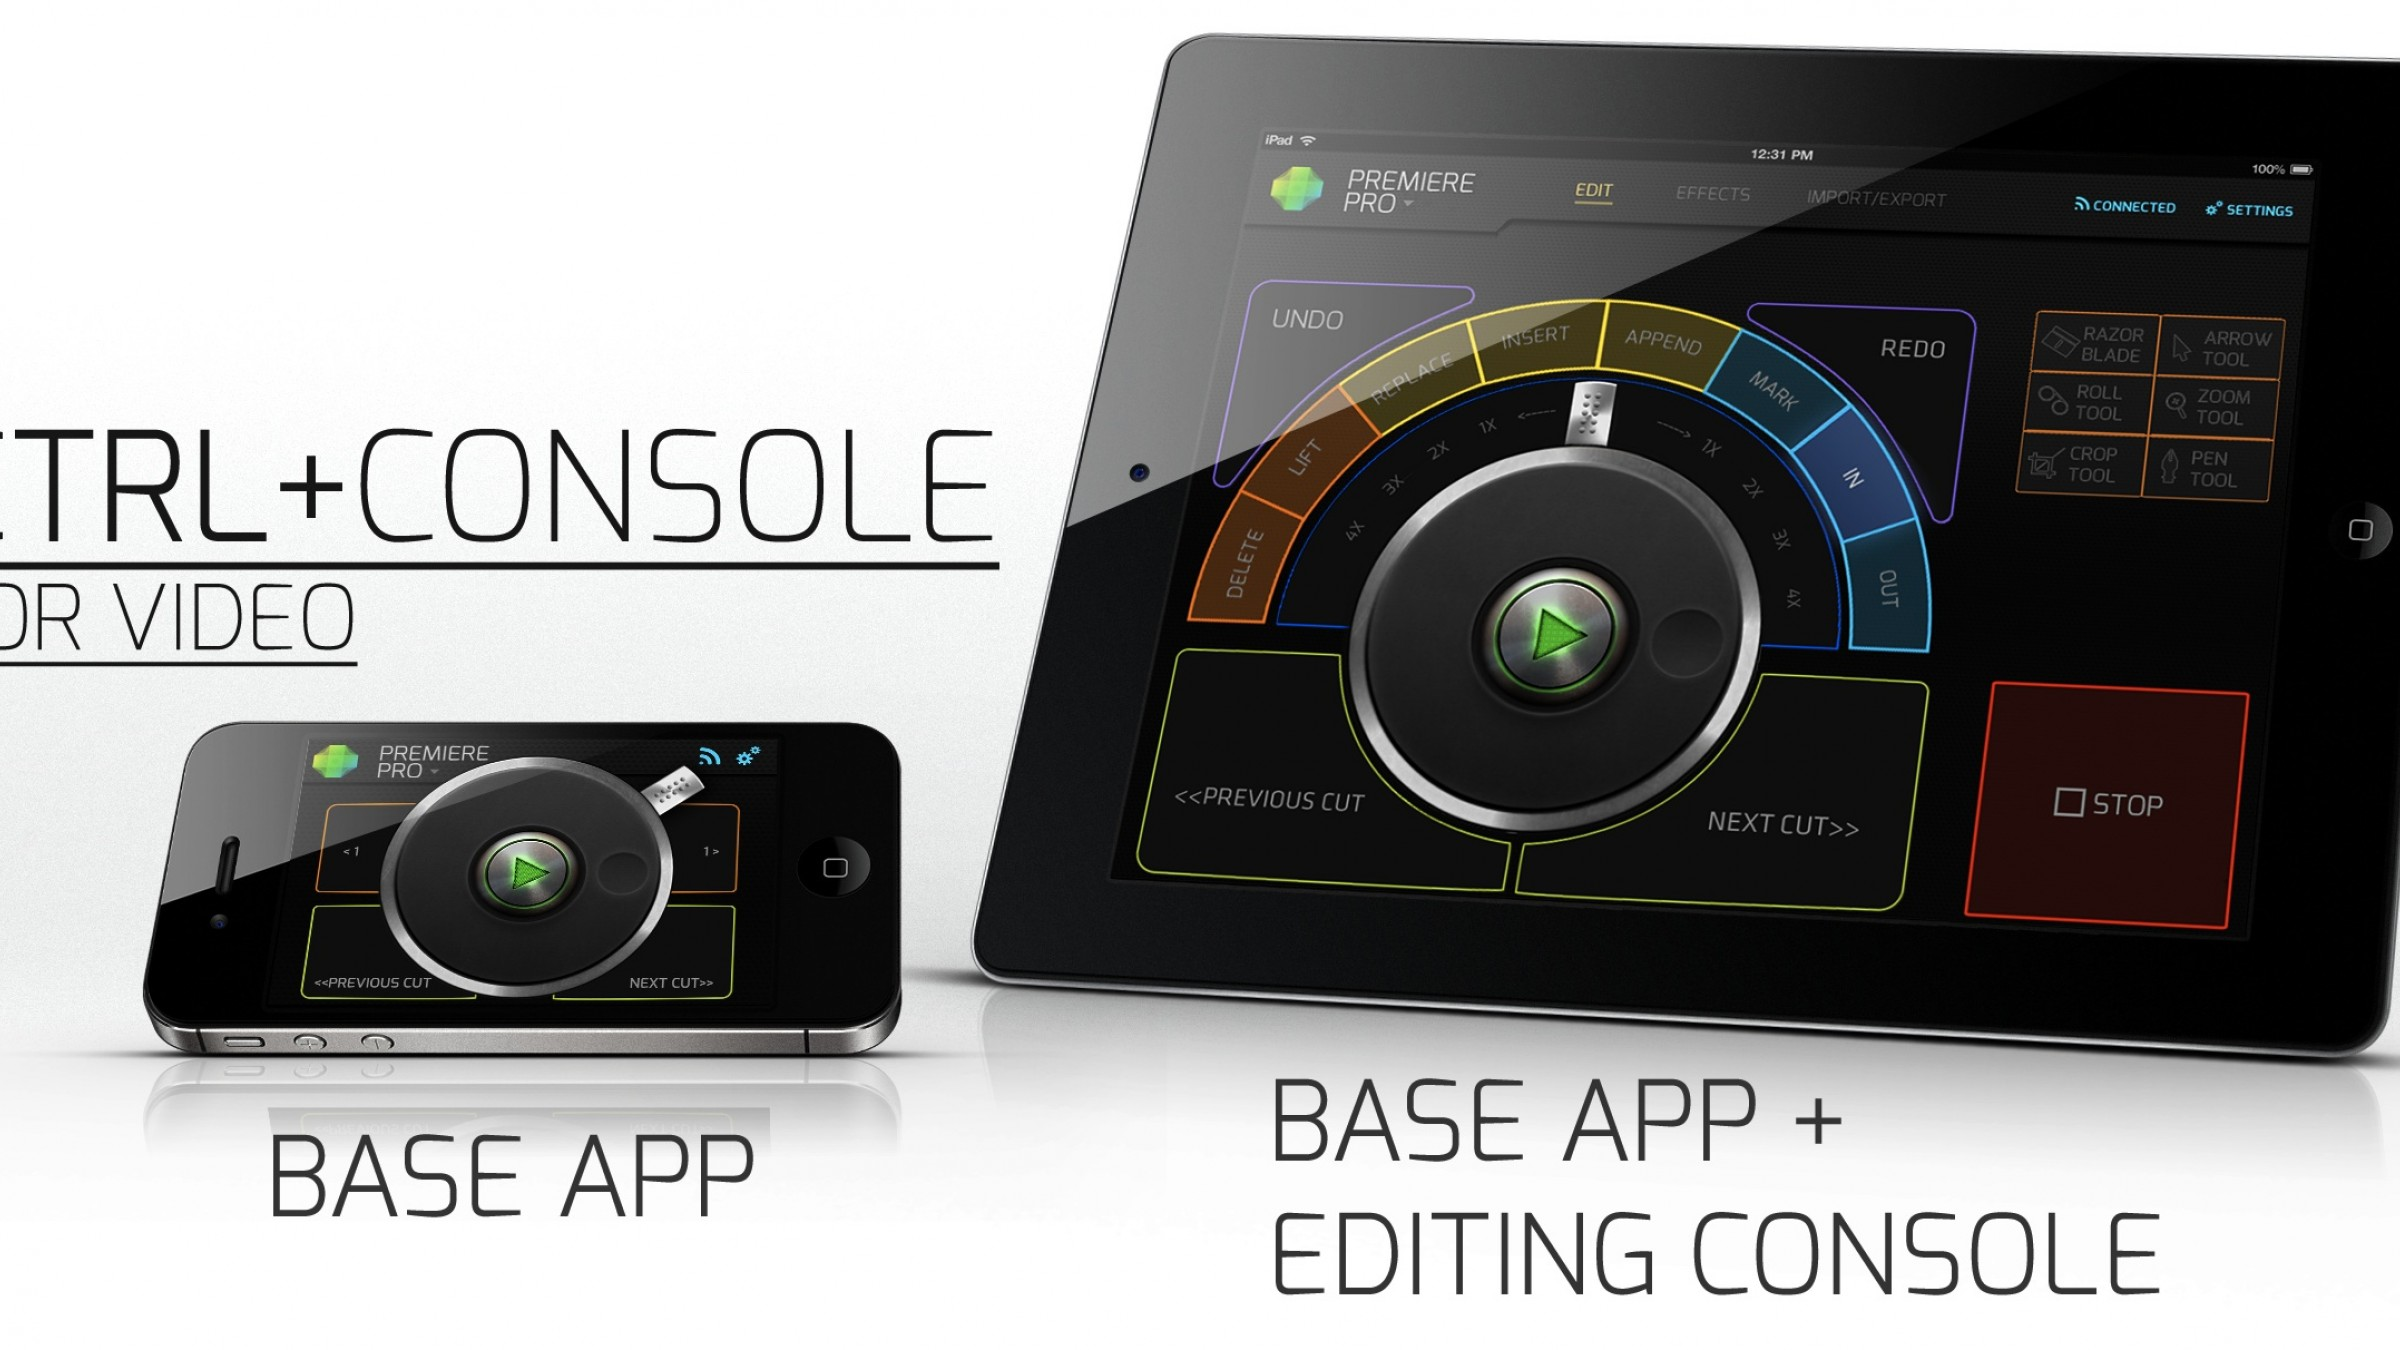 CTRL+Console App: Turn Your iPad into a Premiere Pro or